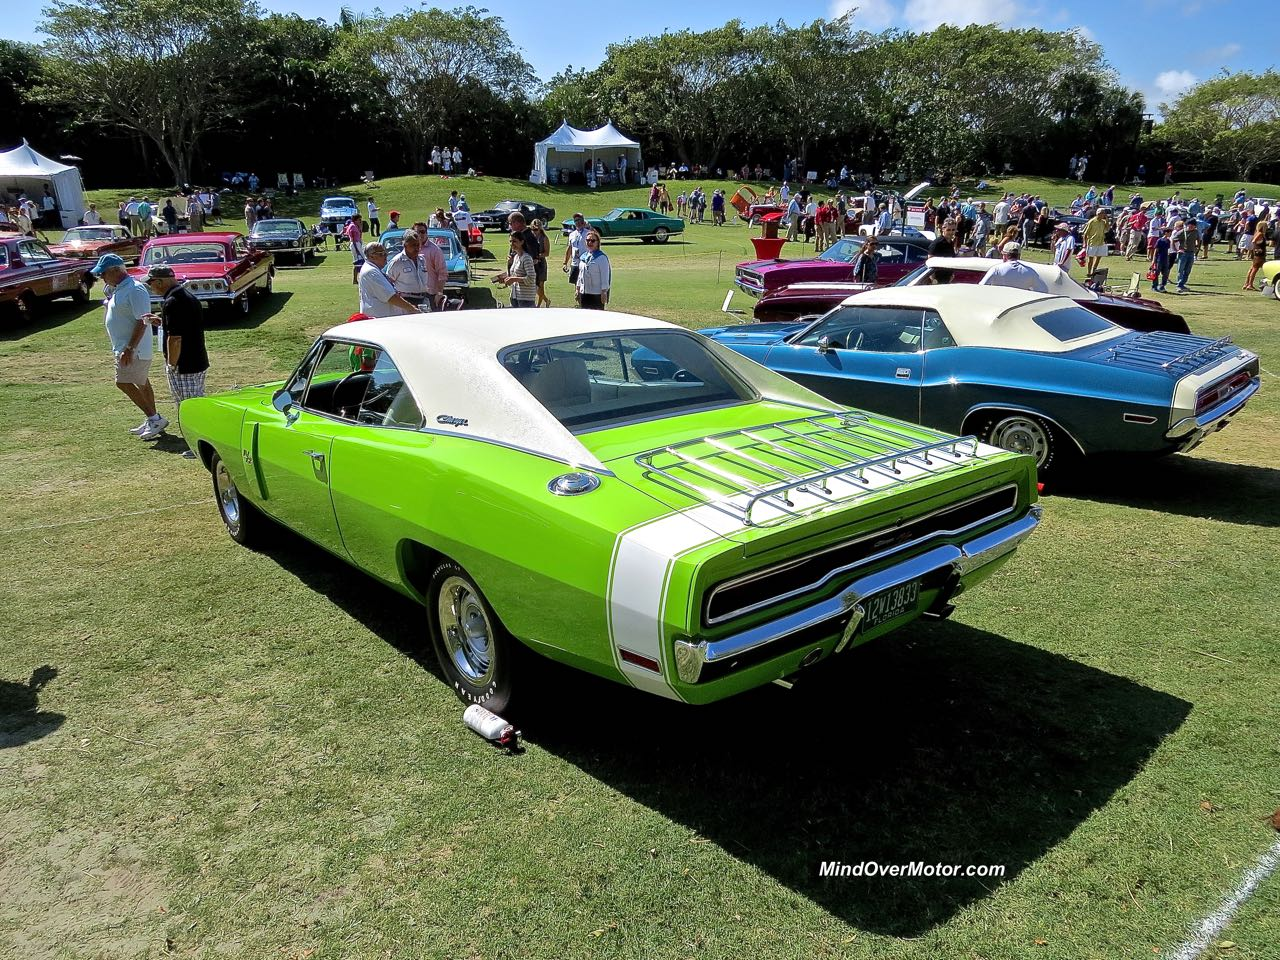 1970 Dodge Charger R:T Rear Angle 2